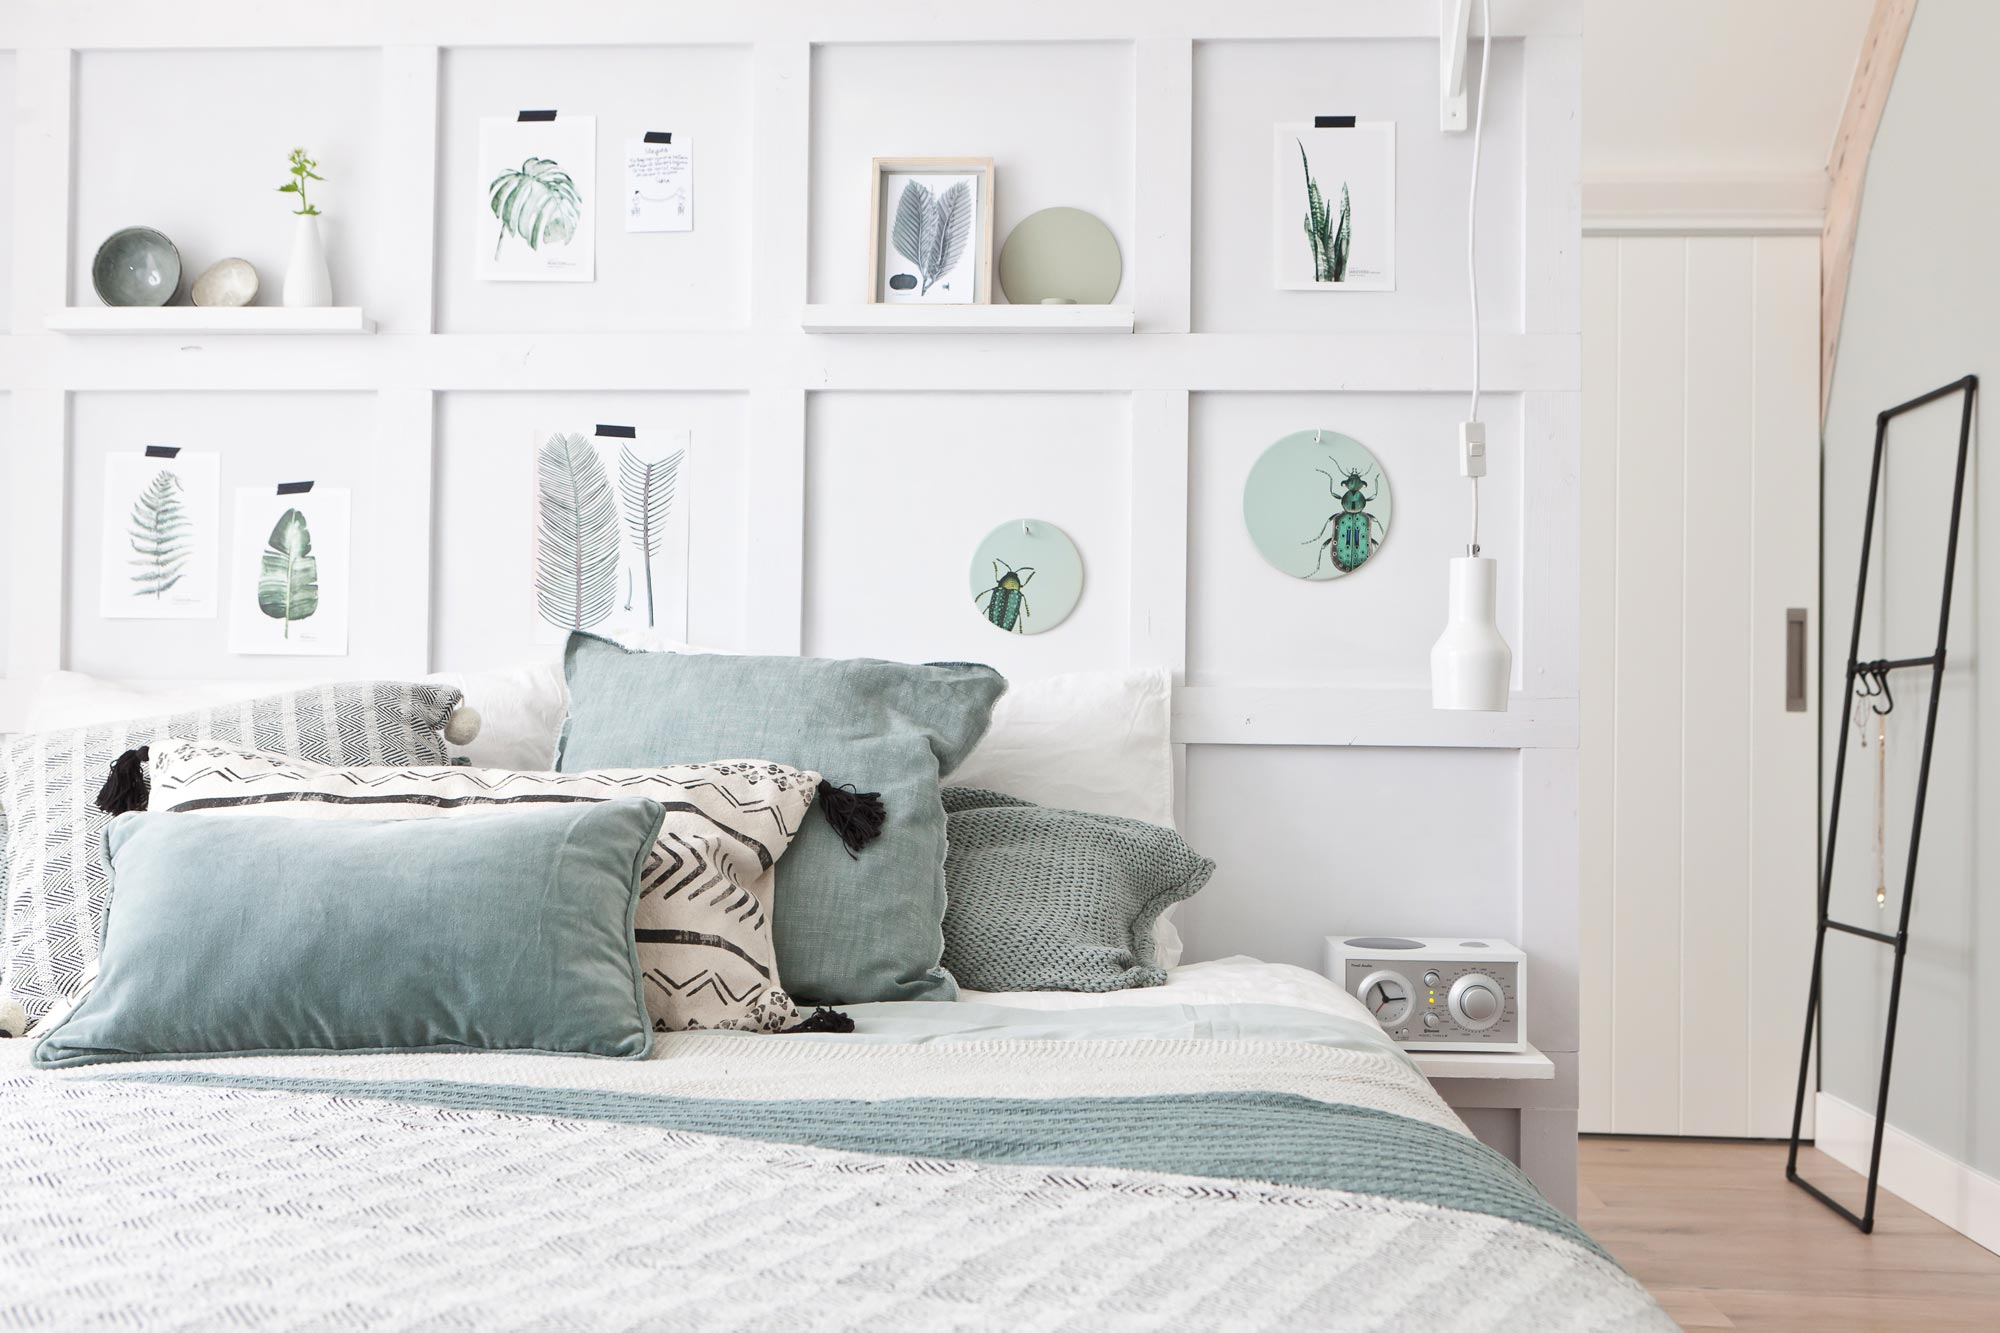 Diy Vtwonen Bank T D C Diy Multifunctional Bedroom Wall